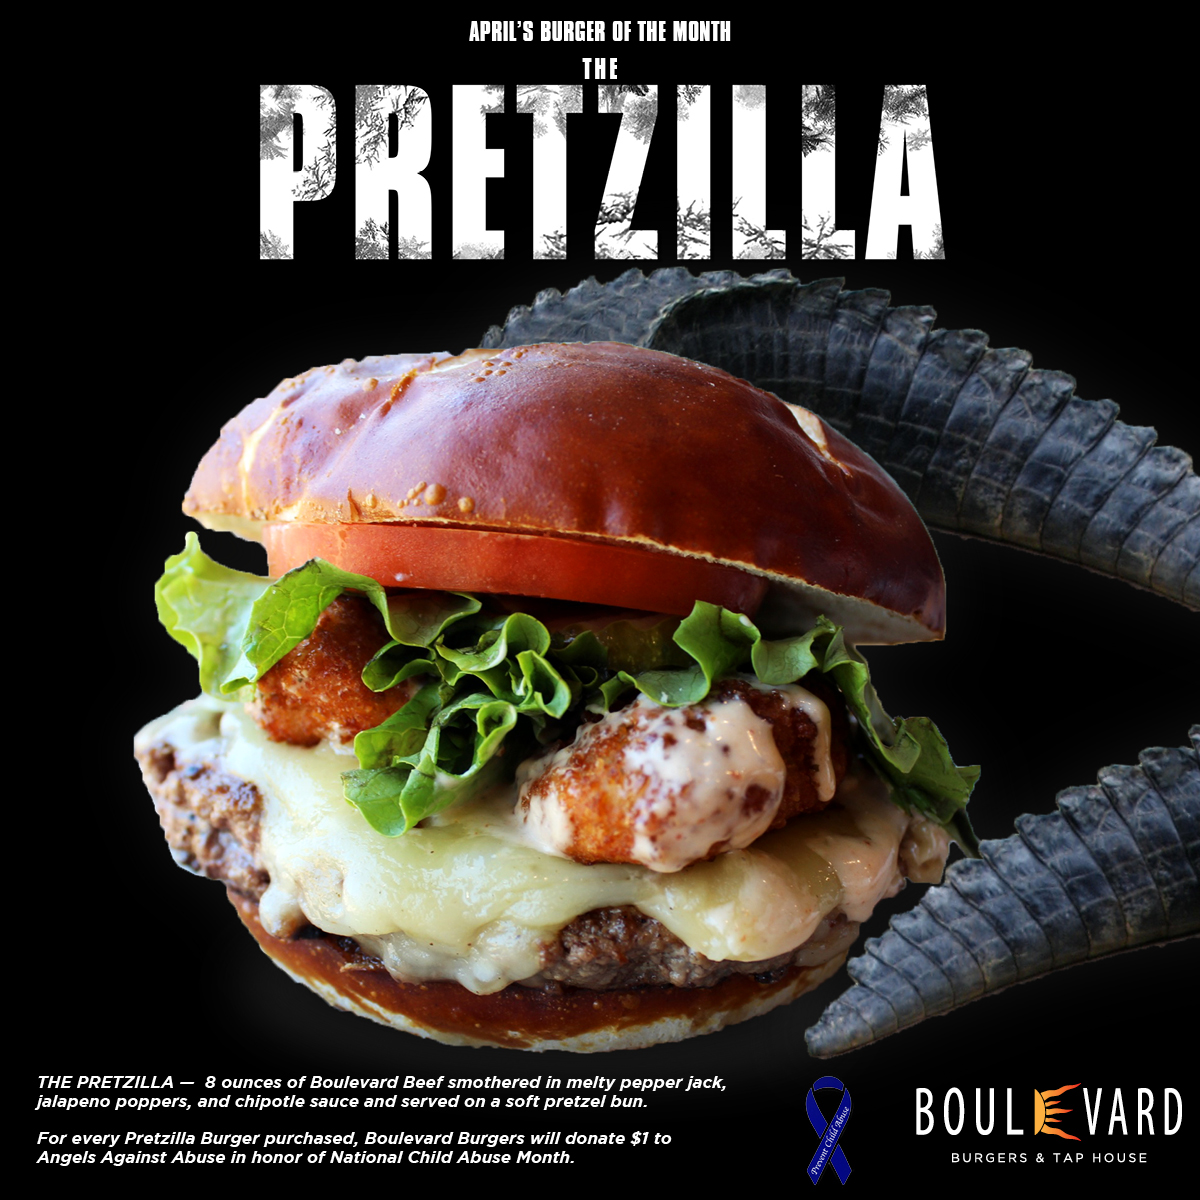 Boulevard Burgers Presents: THE PRETZILLA